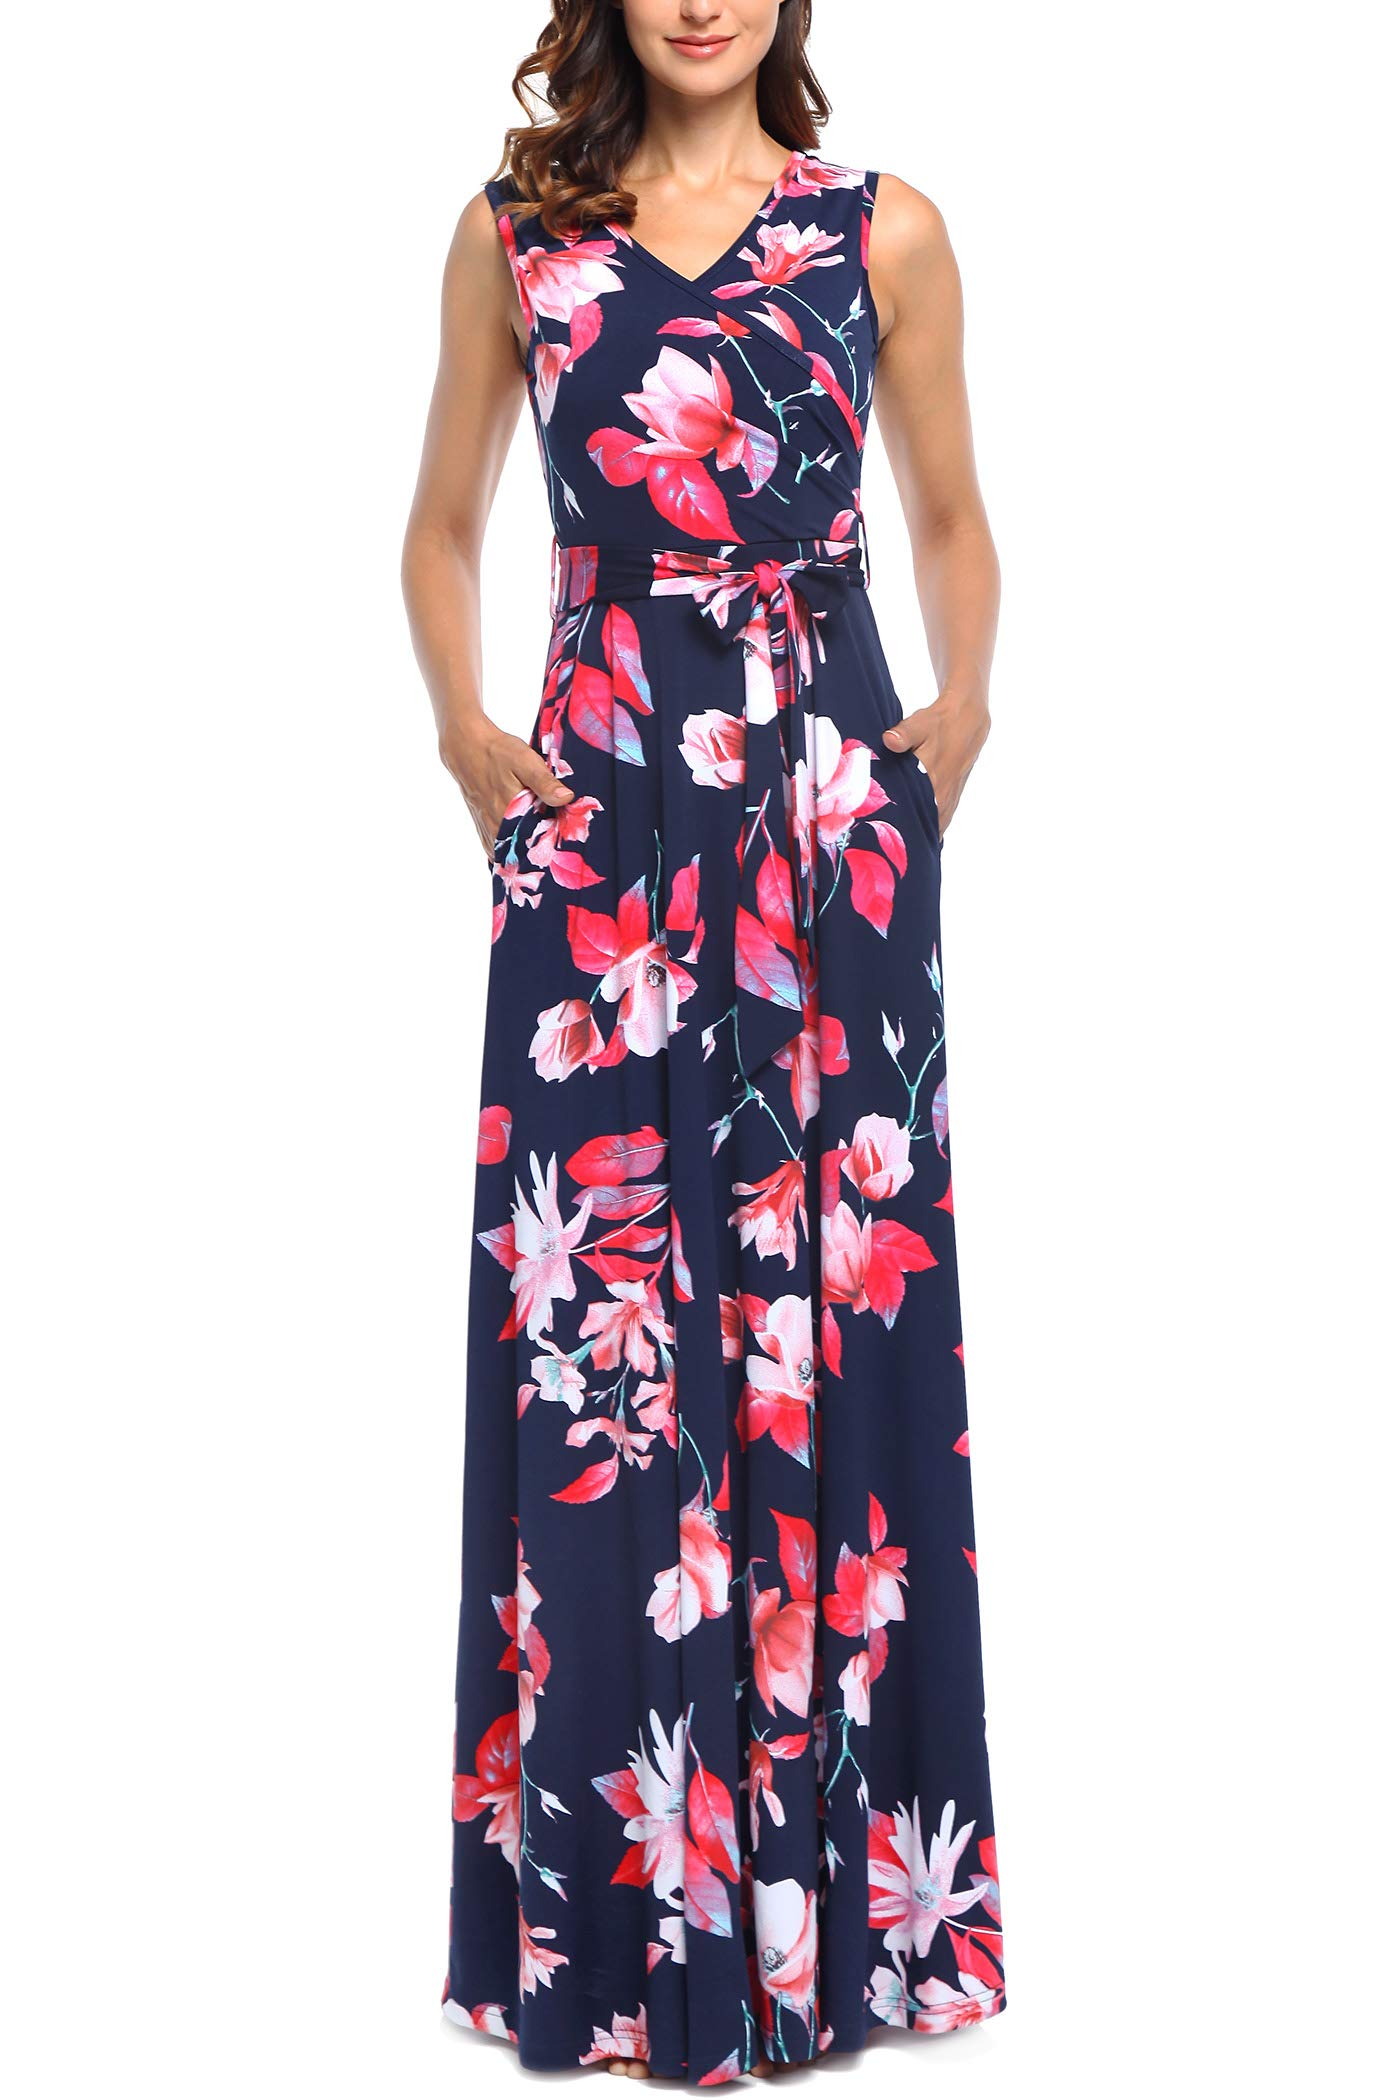 Comila Womens Summer V Neck Floral Maxi Dress Casual Long Dresses with Pockets